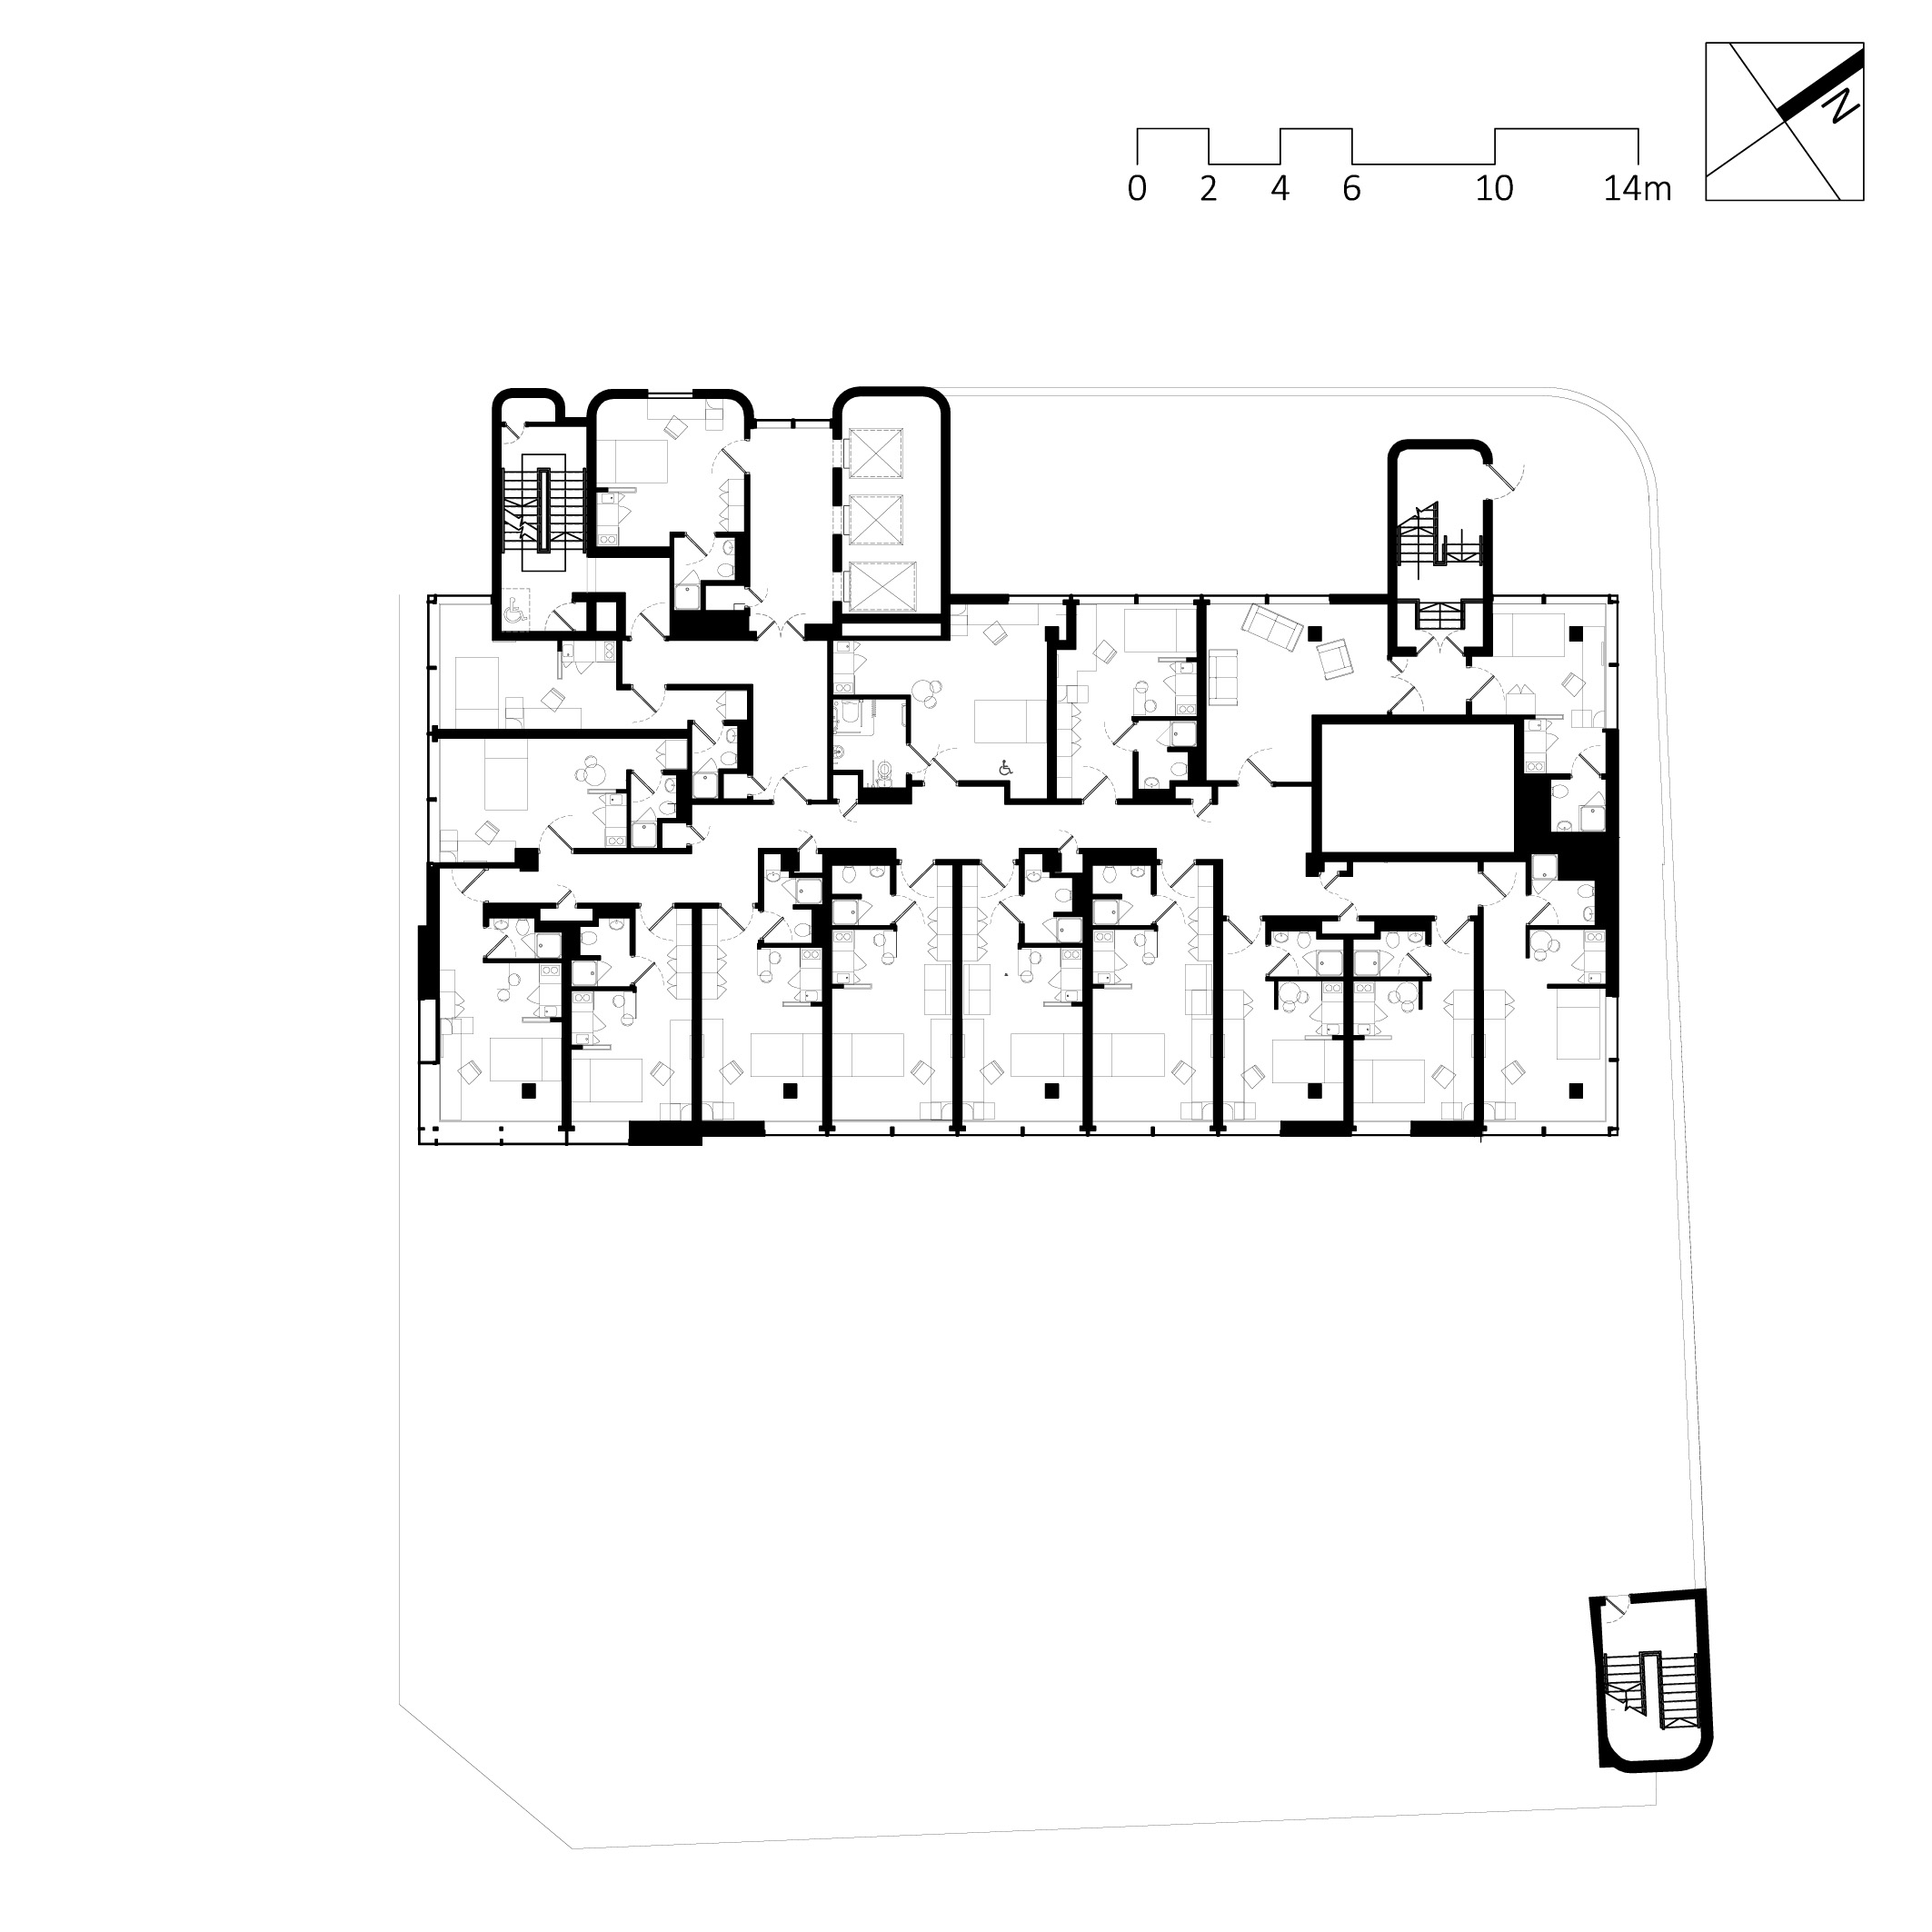 typical floor plan of a 'tower' level conversion